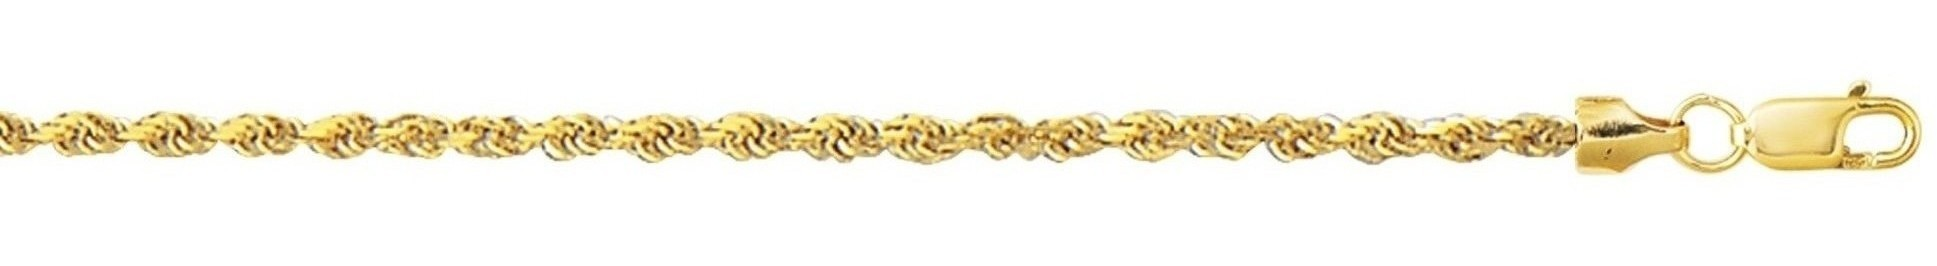 "20"" 10K Yellow Gold 2.0mm (0.08"") Polished Diamond Cut Hollow Sparkle Rope Chain w/ Lobster Clasp"